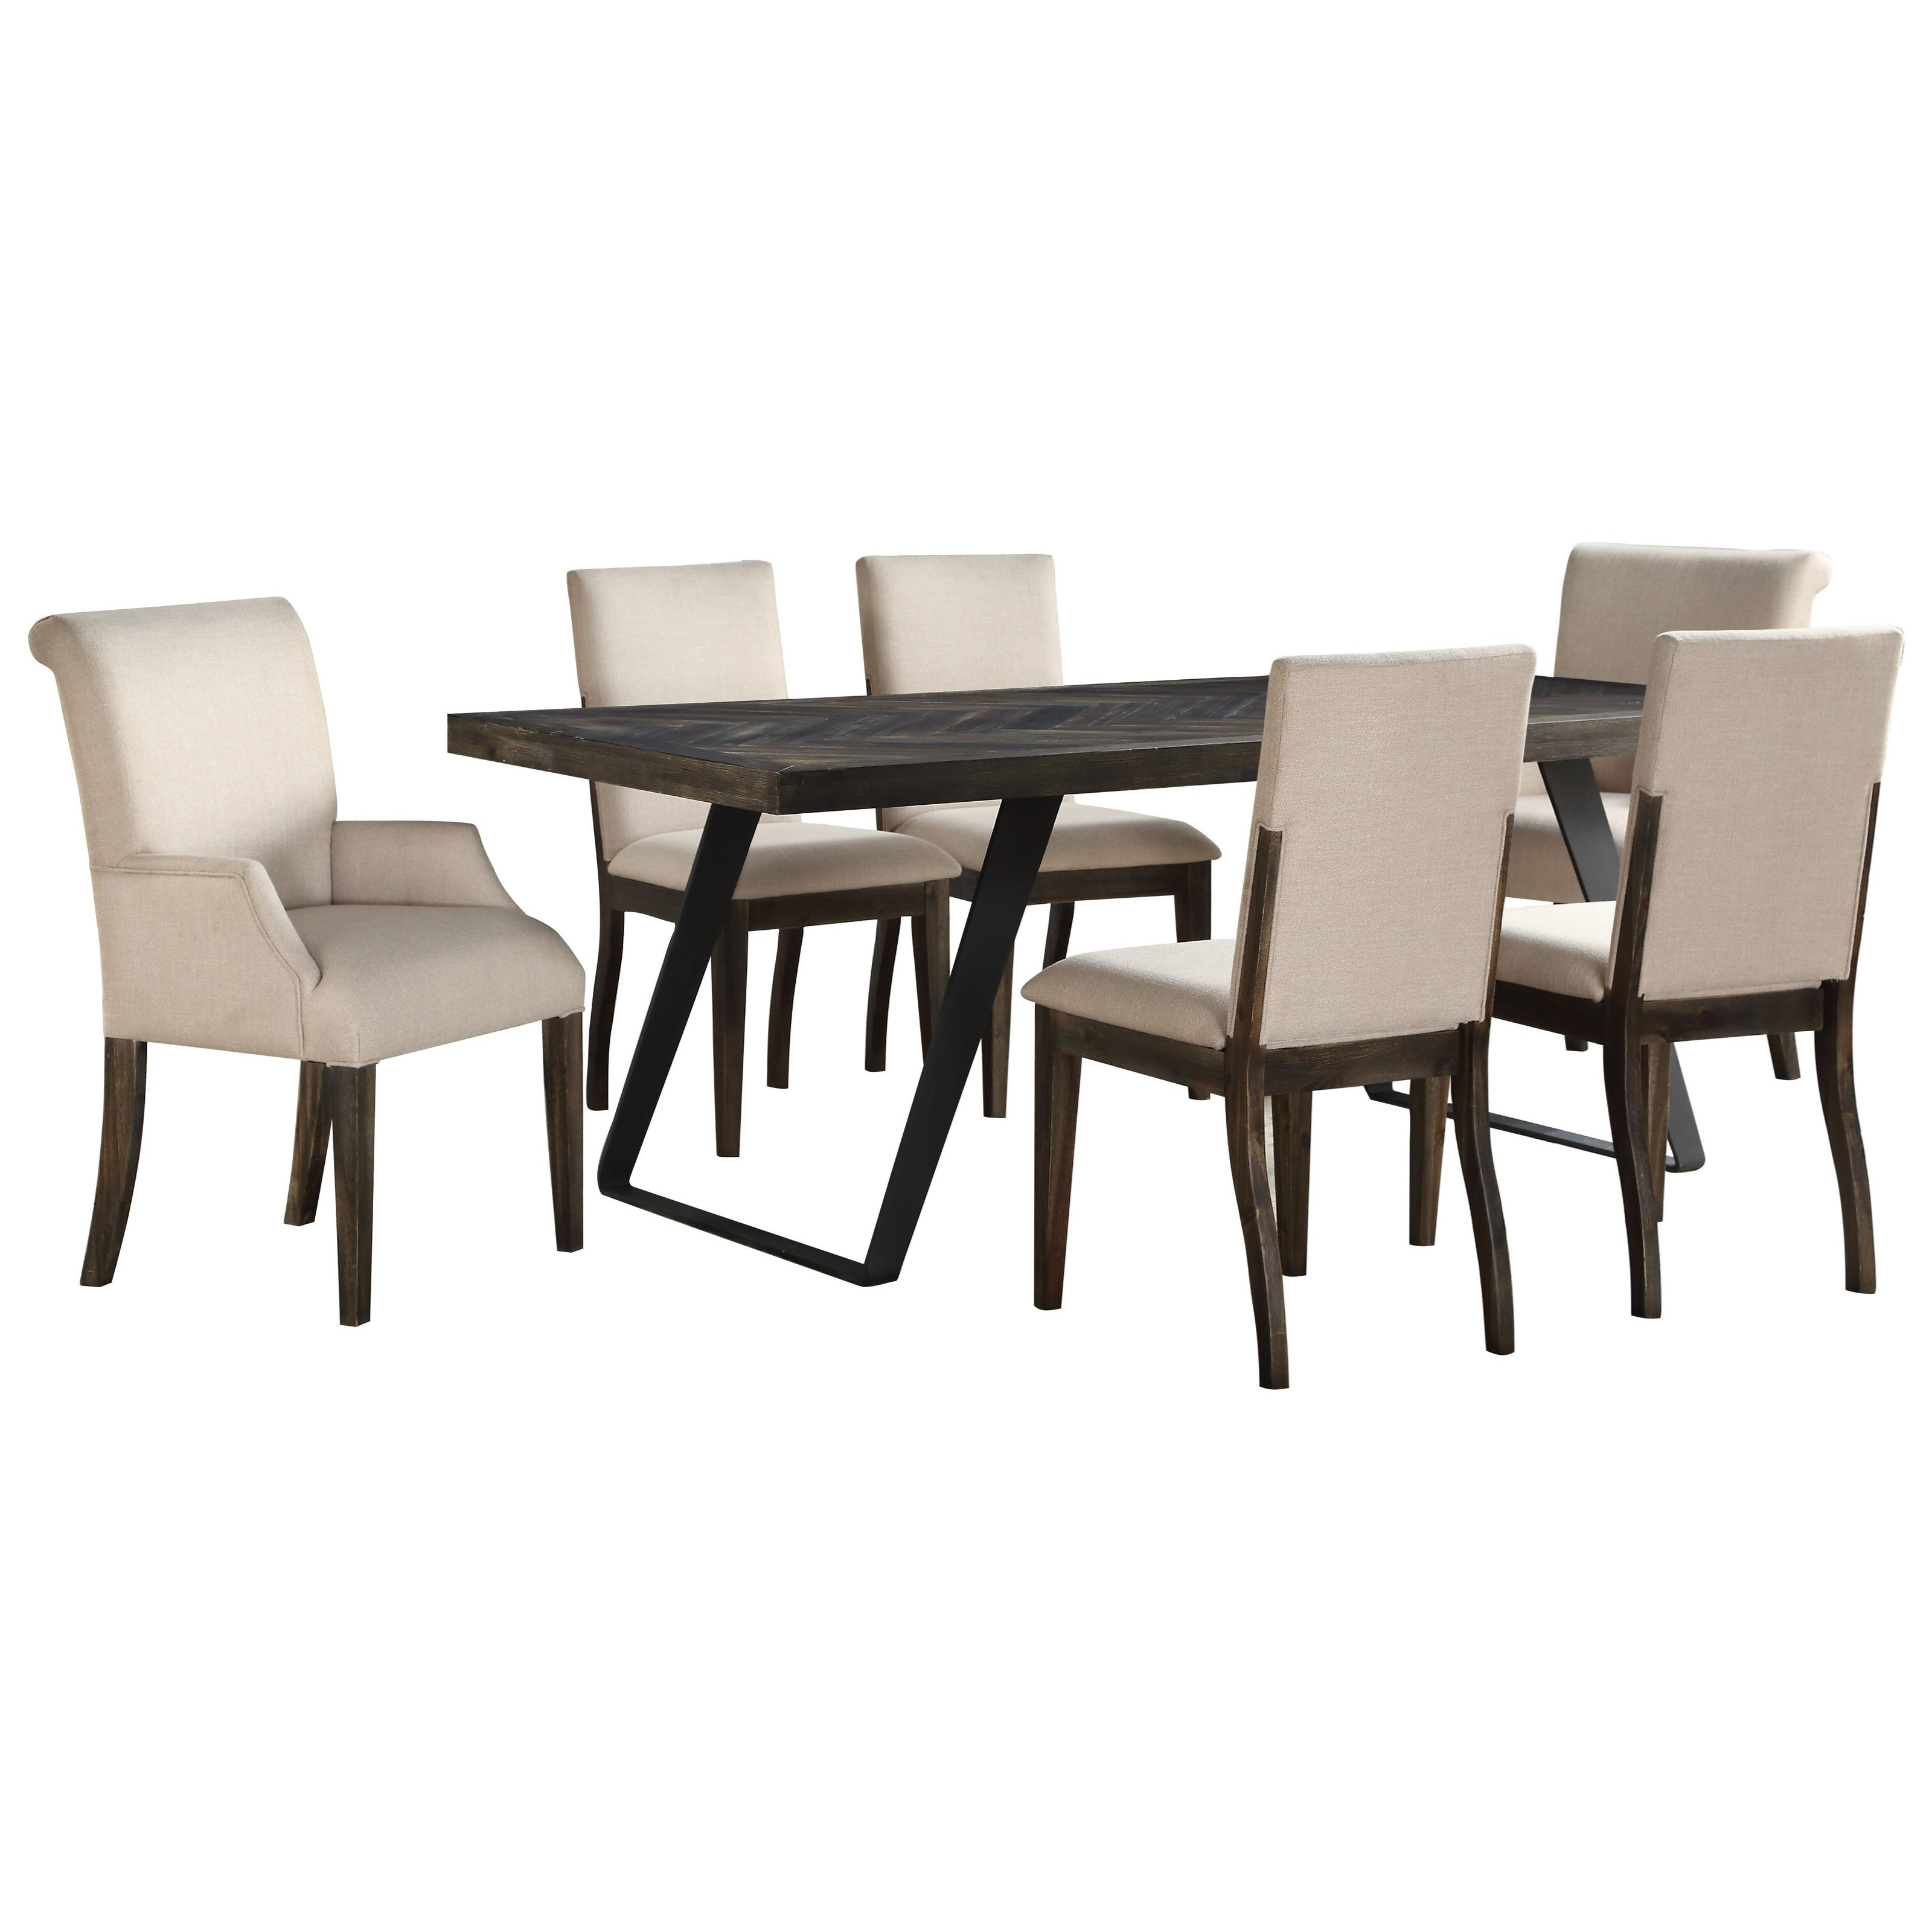 Aspen Court 7-Piece Table and Chair Set by Coast to Coast Imports at Baer's Furniture